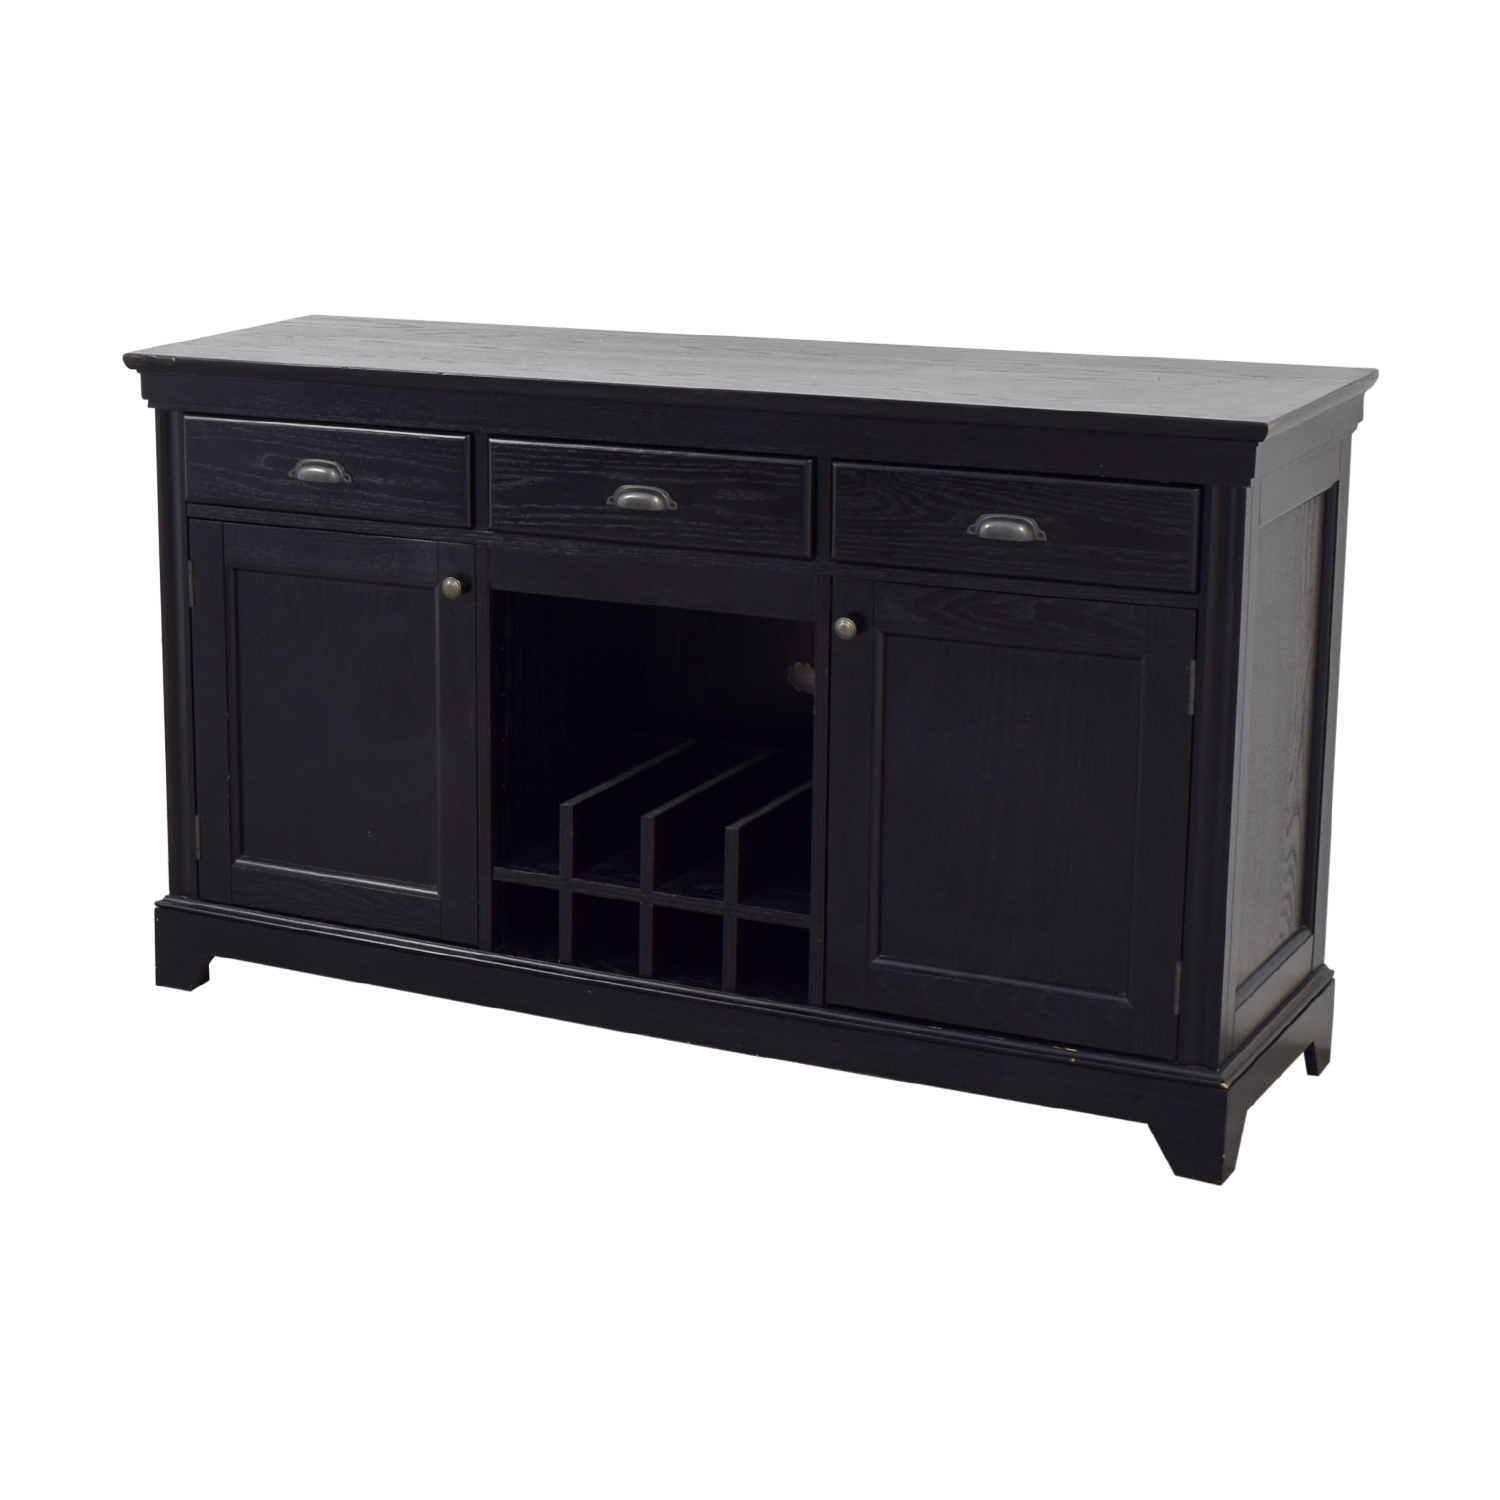 69 off pottery barn pottery barn black entertainment center storage. Black Bedroom Furniture Sets. Home Design Ideas